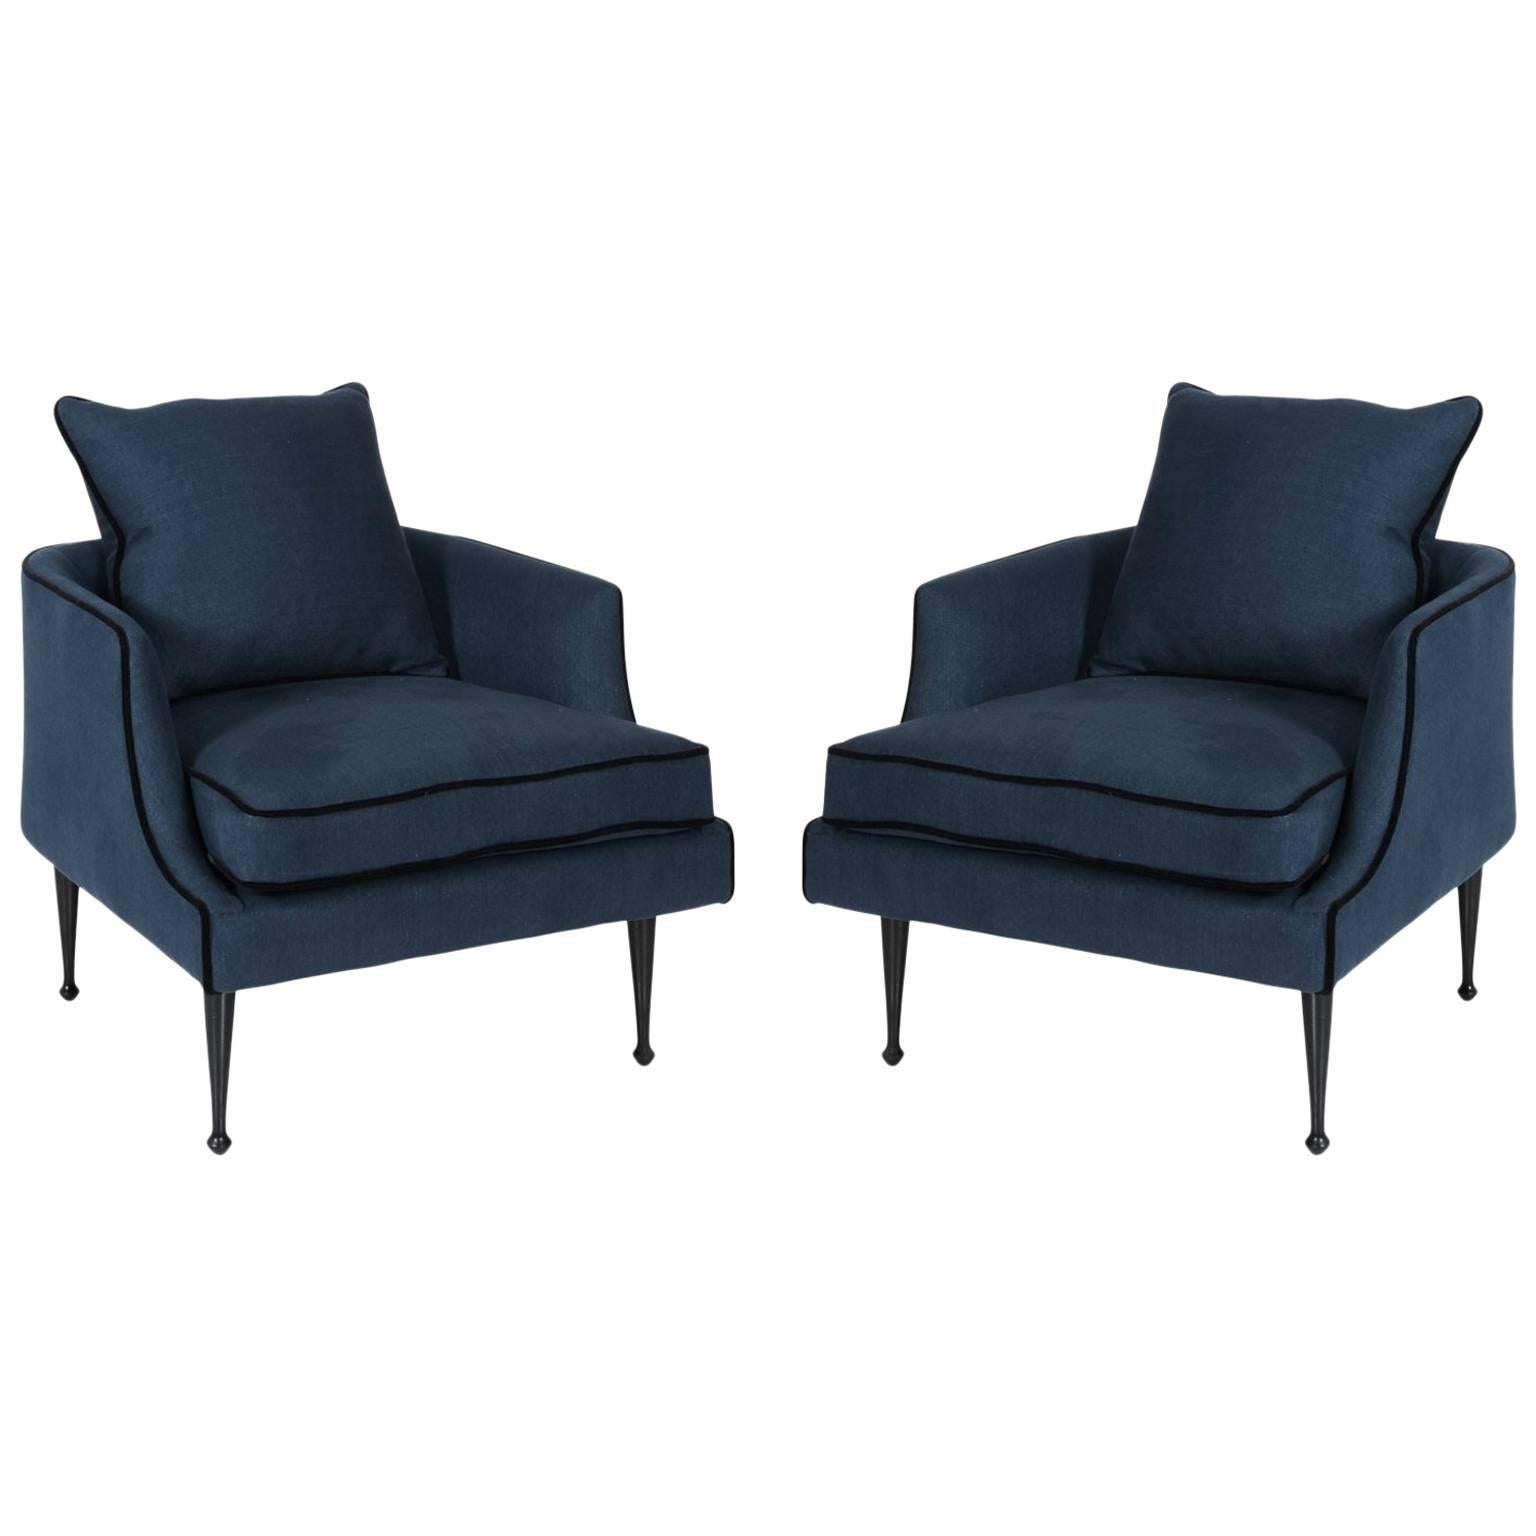 Pair Of Rich Blue Linen Club Chairs For Sale